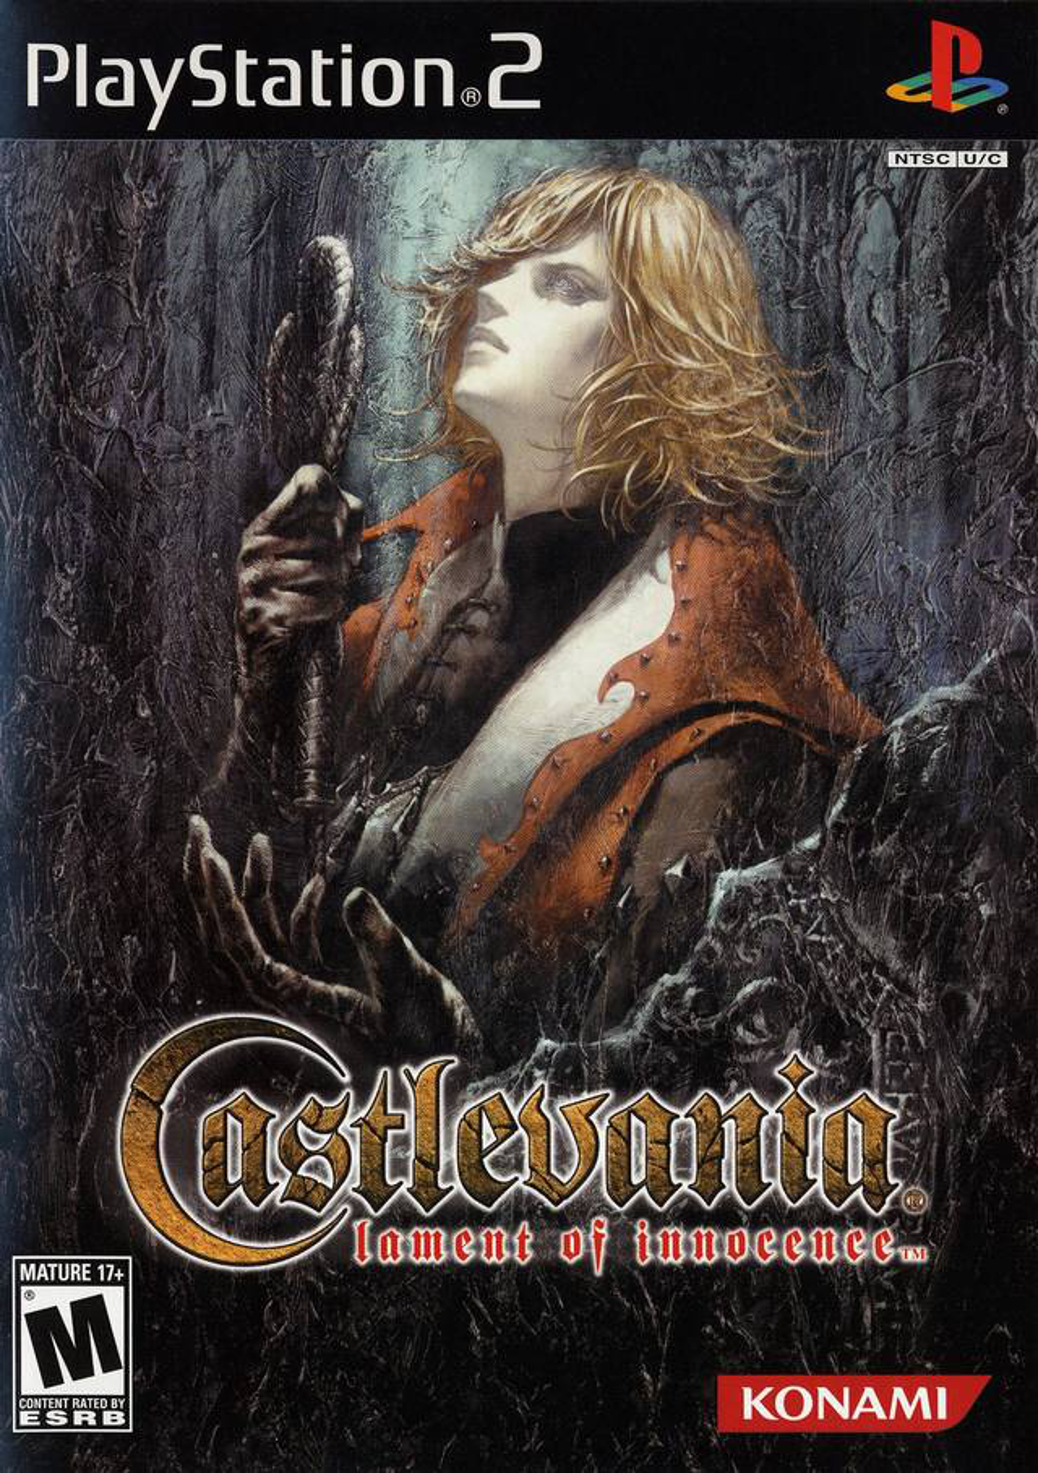 Ayami Kojima, the artist for this and many other Castlevania games is self-taught. What talent!